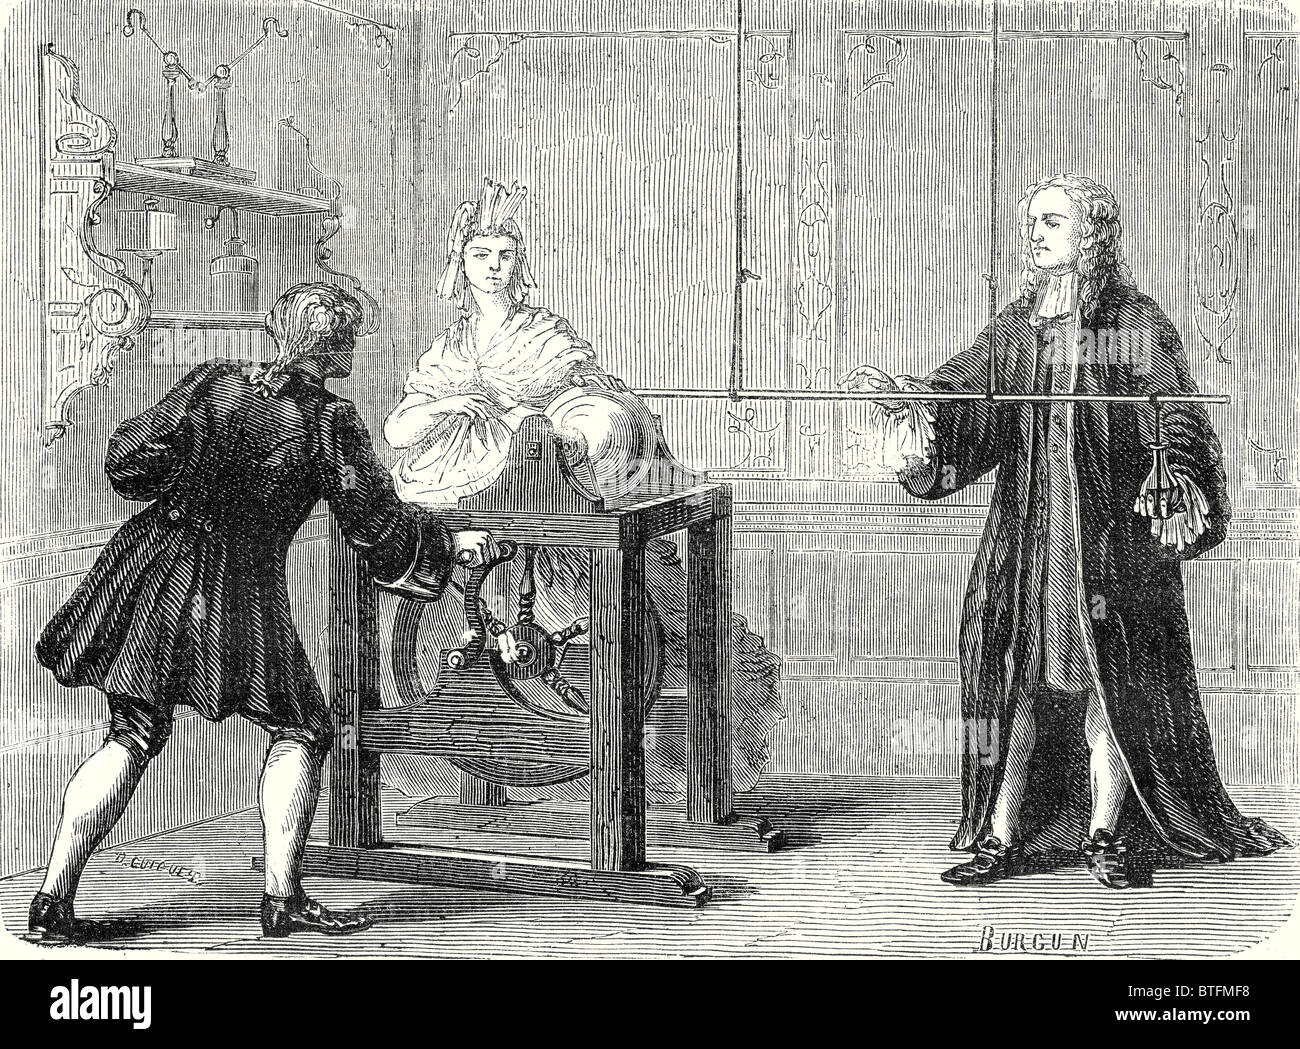 Experiment conducted in Leiden by Musschenbroek on 20 April 1746 - Stock Image